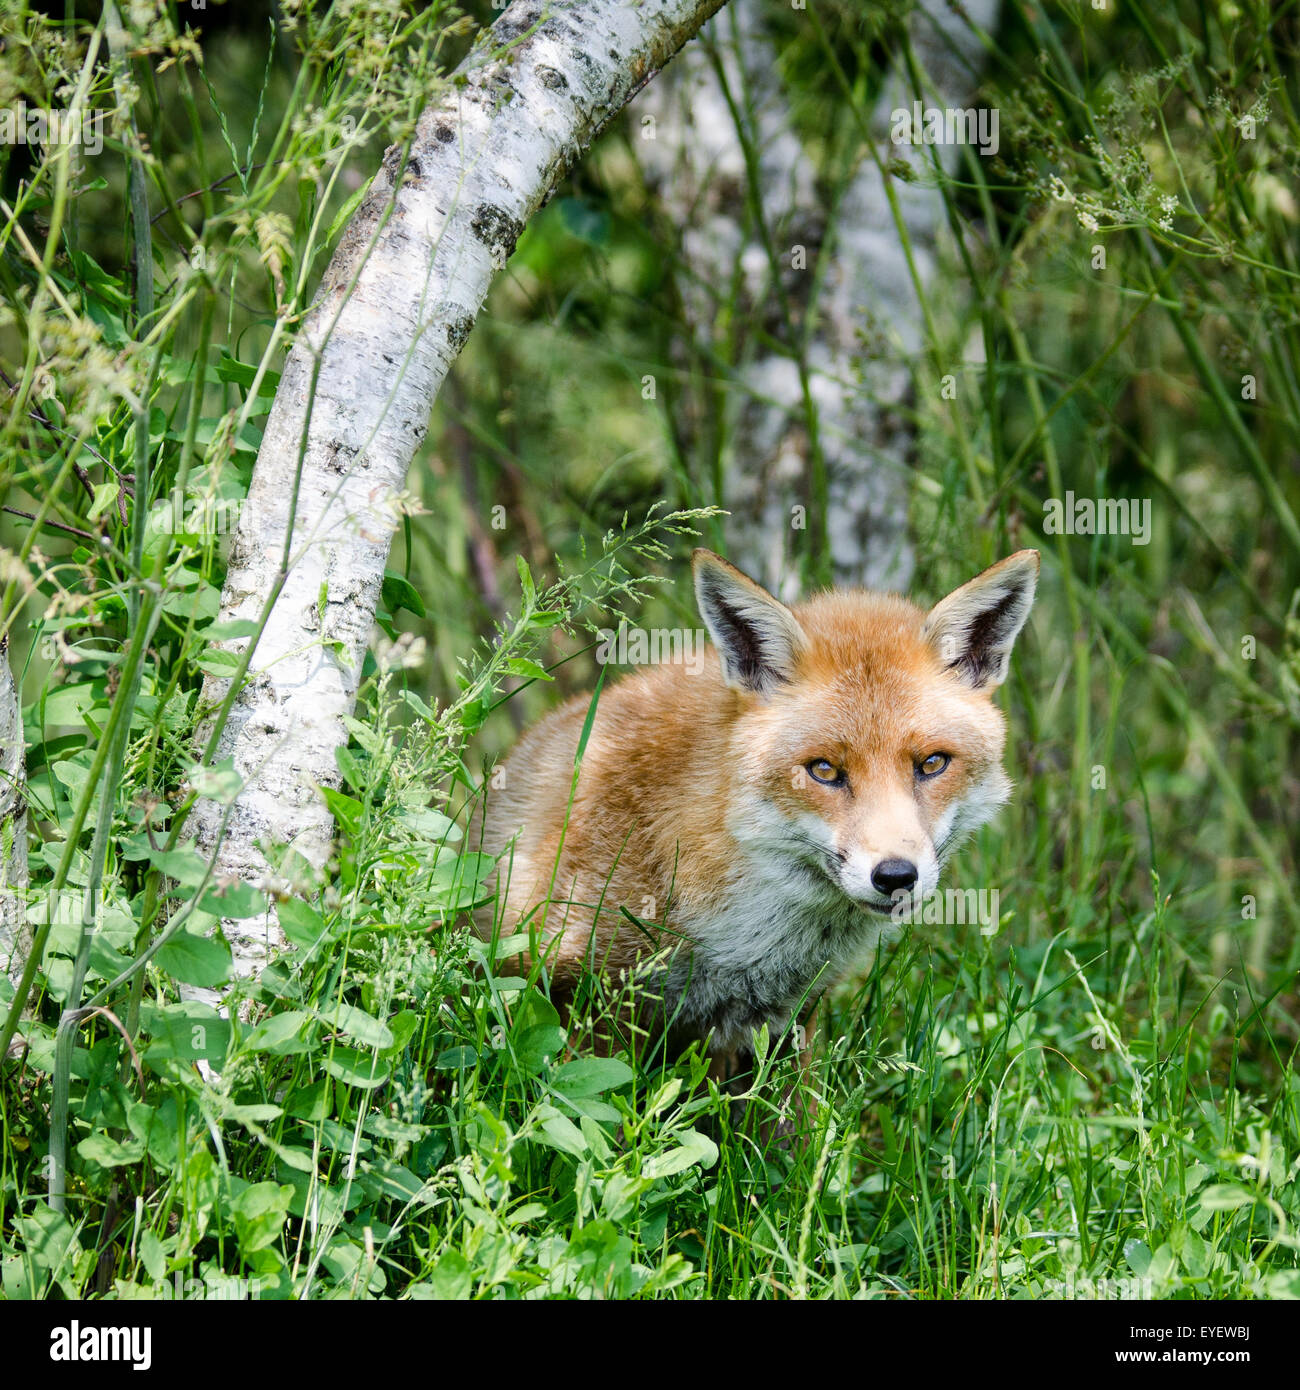 European Fox (Vulpes vulpes) sitting in field, UK. - Stock Image